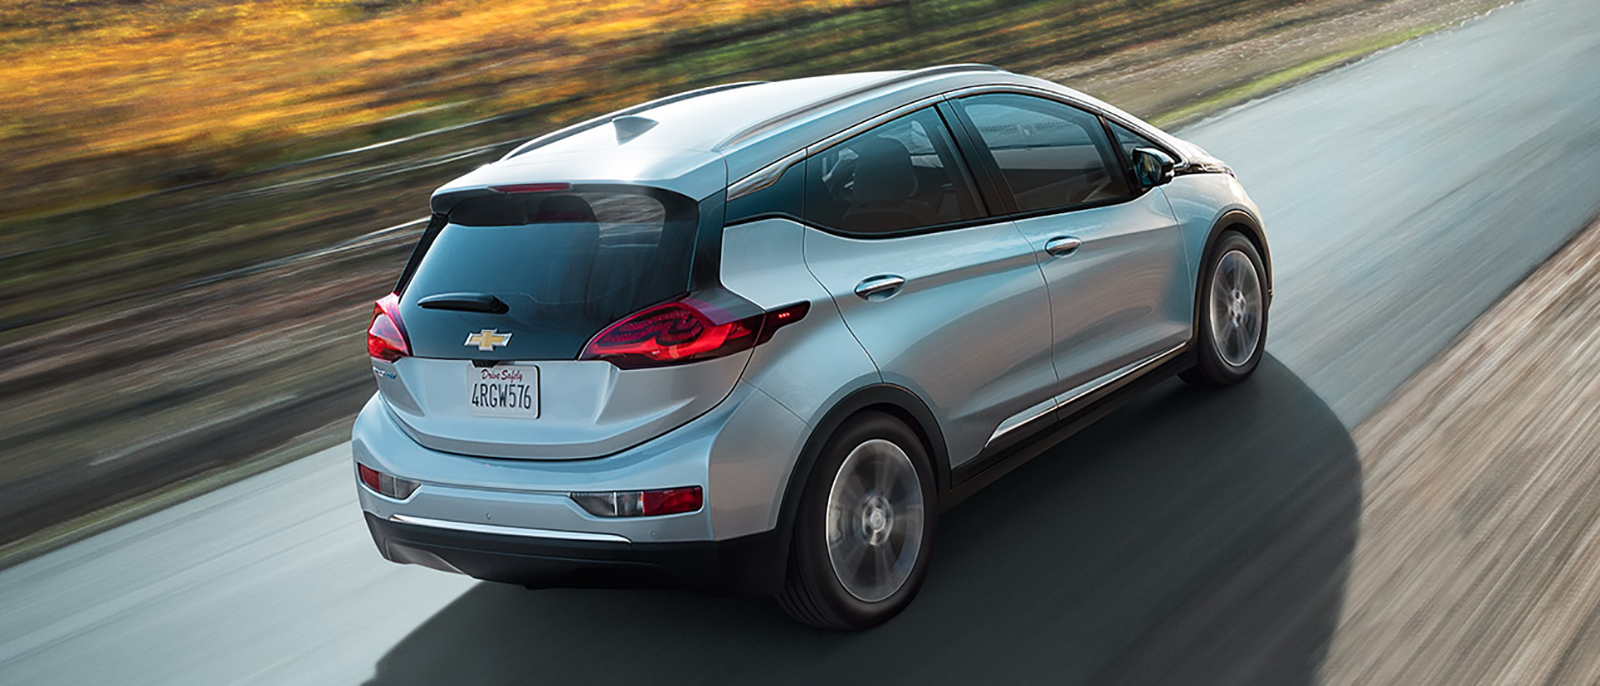 The 2017 Chevrolet Bolt Release Date Is Near